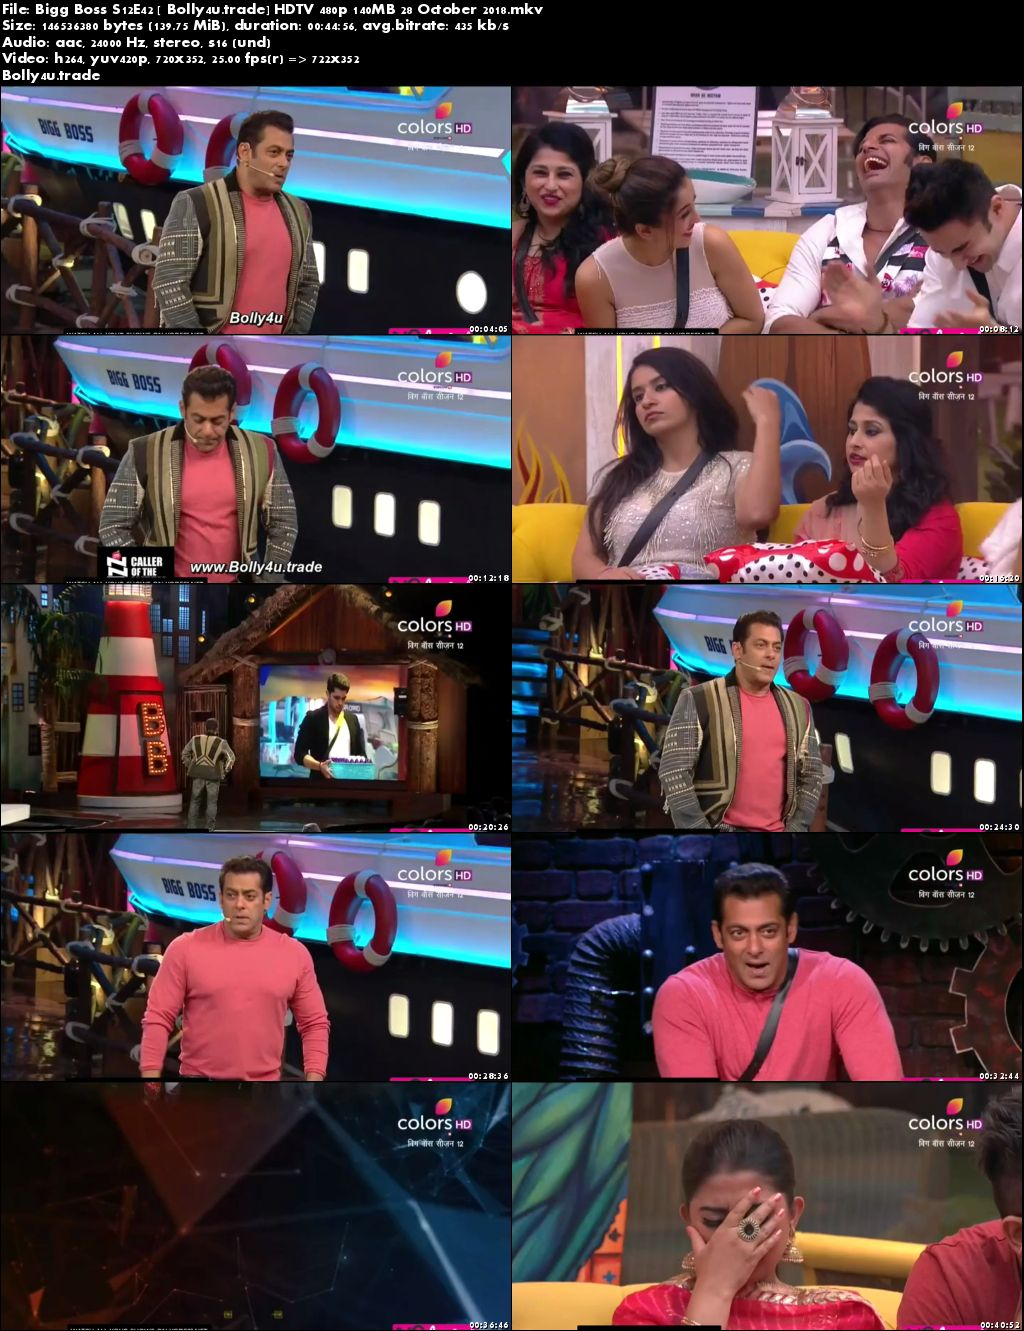 Bigg Boss S12E42 HDTV 480p 140MB 28 October 2018 Download